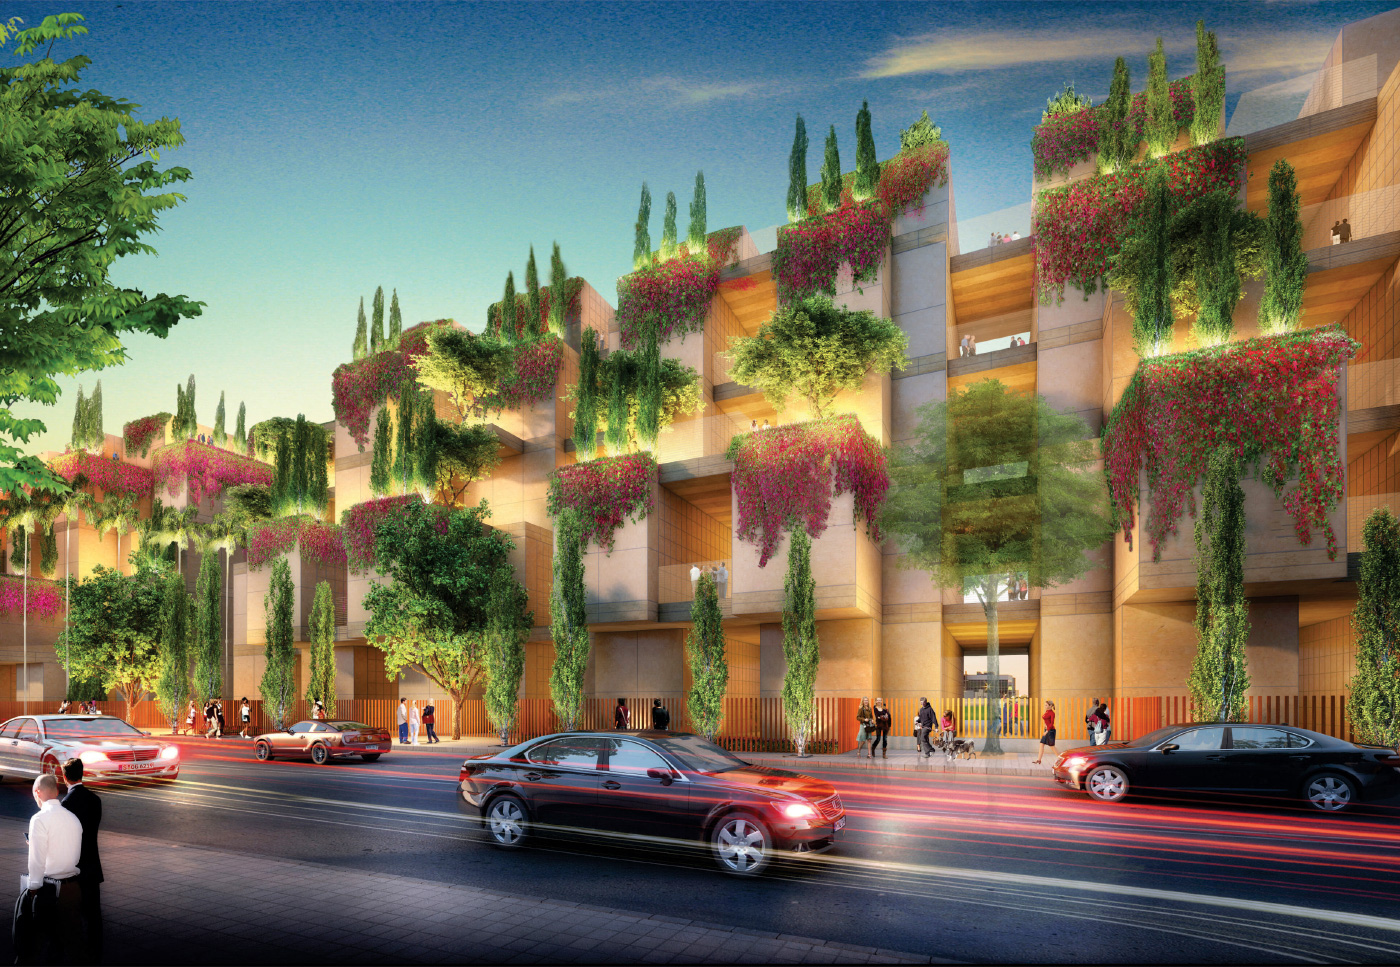 Rendering of a towering addition next to the for Hollywood Forever Cemetery with plants